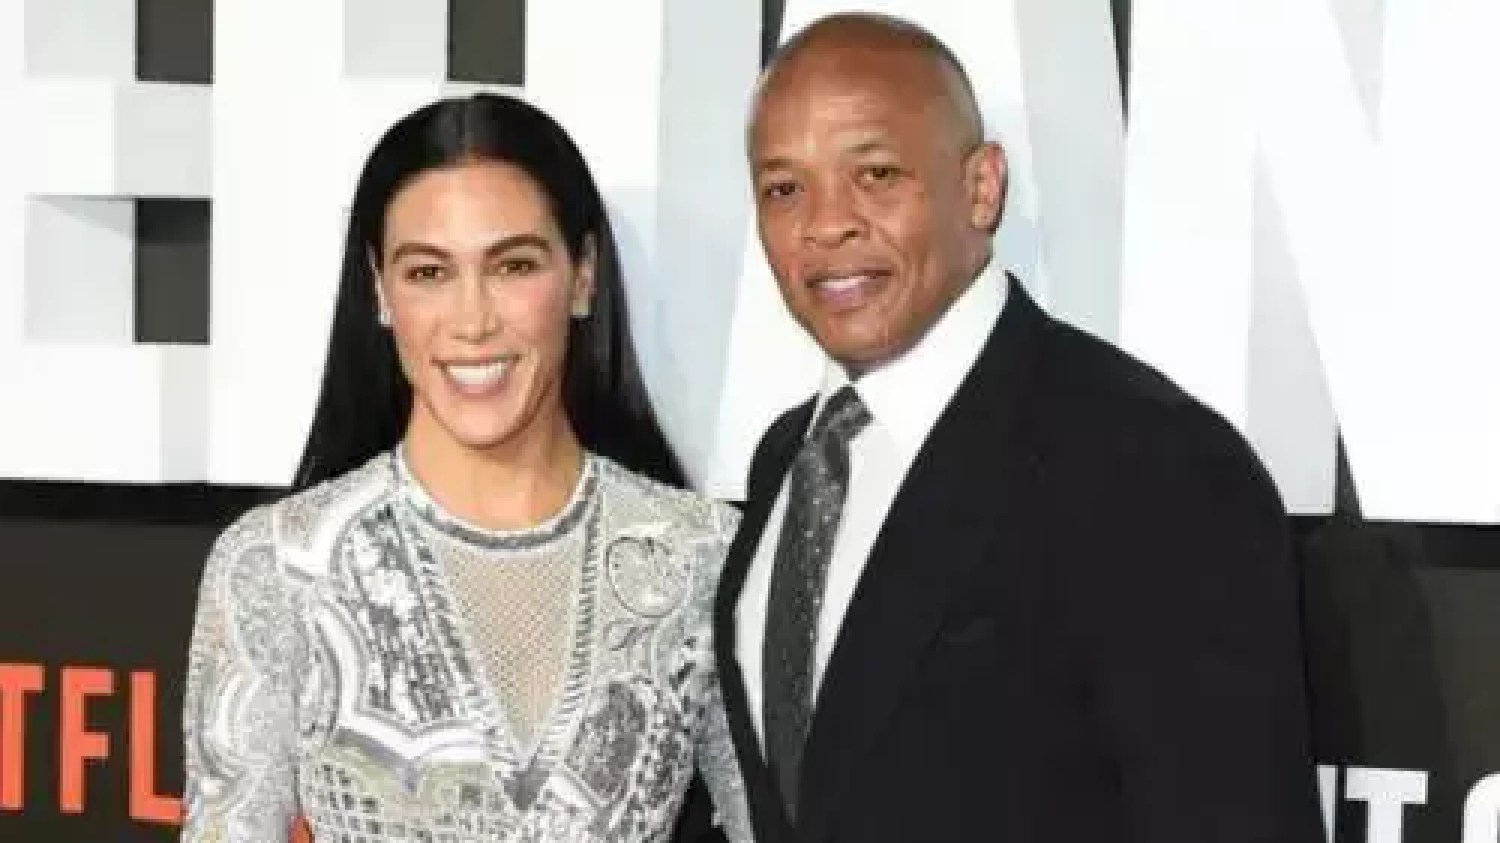 Entertainment News: Dr. Dre Ordered To Pay Ex-Wife, Nicole Young 151 Million Naira Monthly In Spousal Support